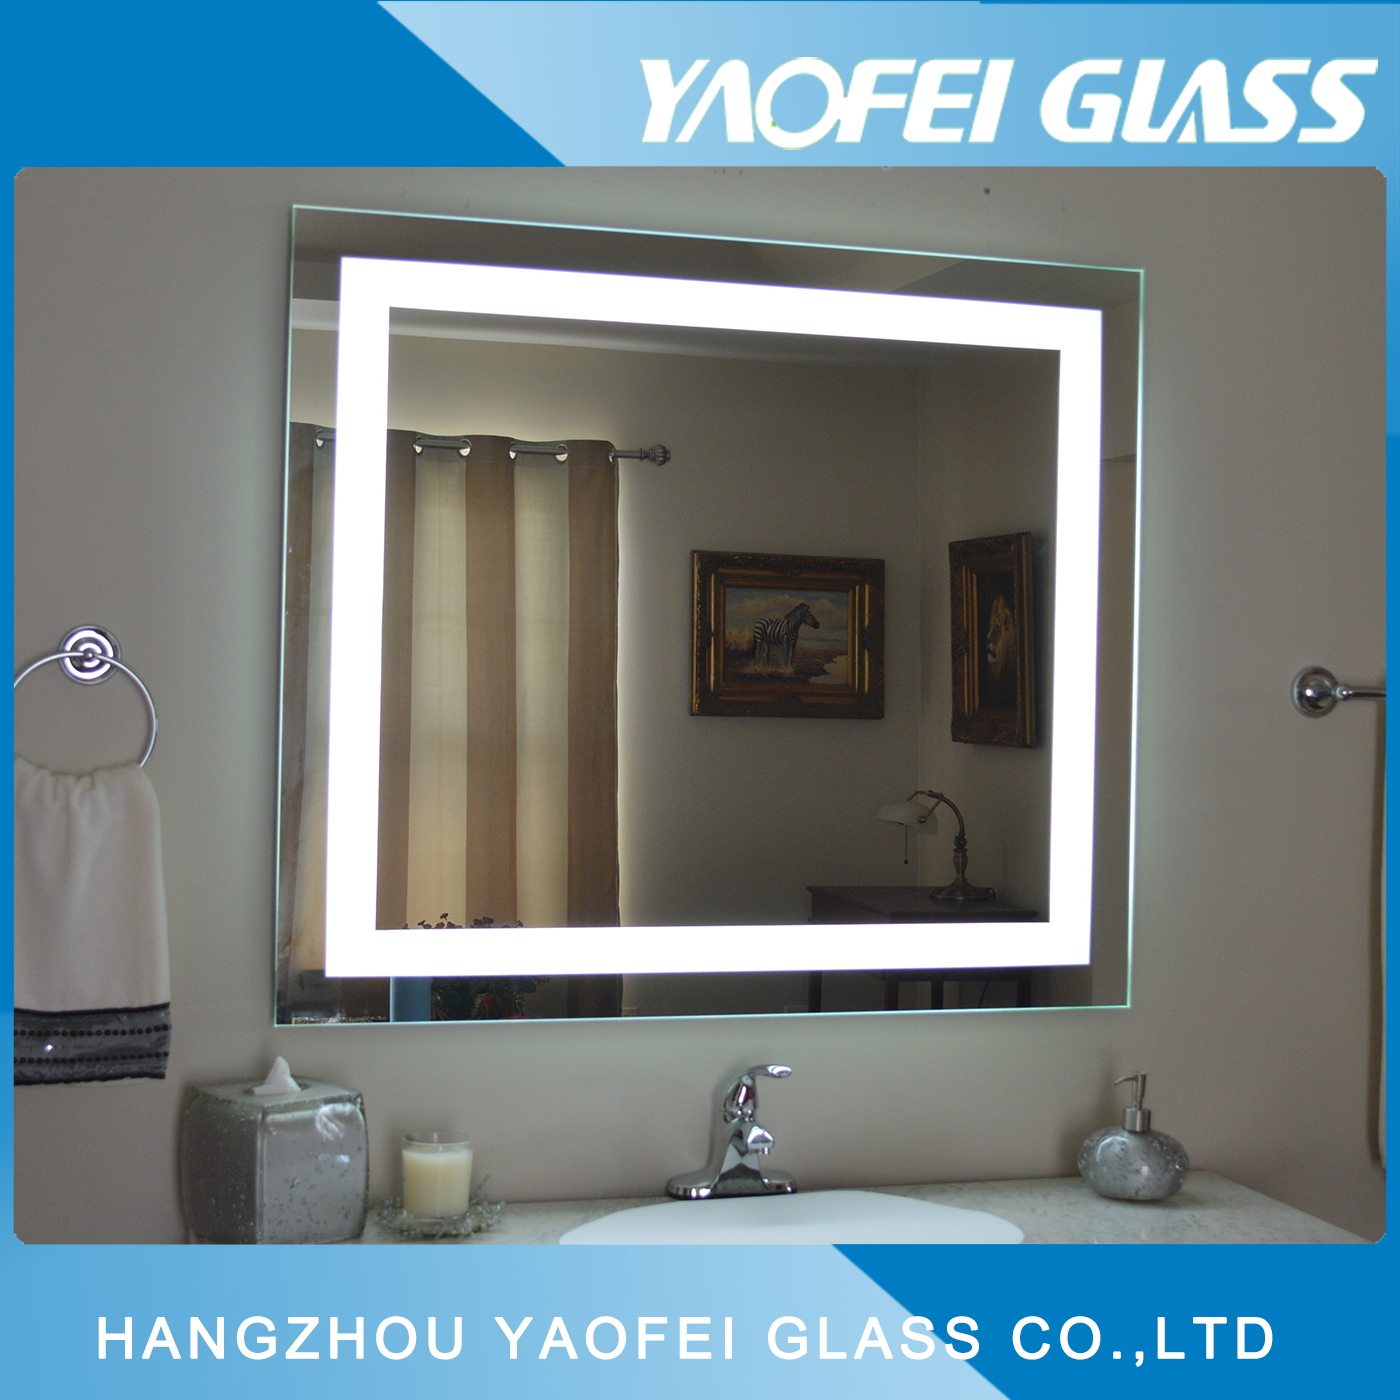 Modern Bathroom LED Mirror with Fogless